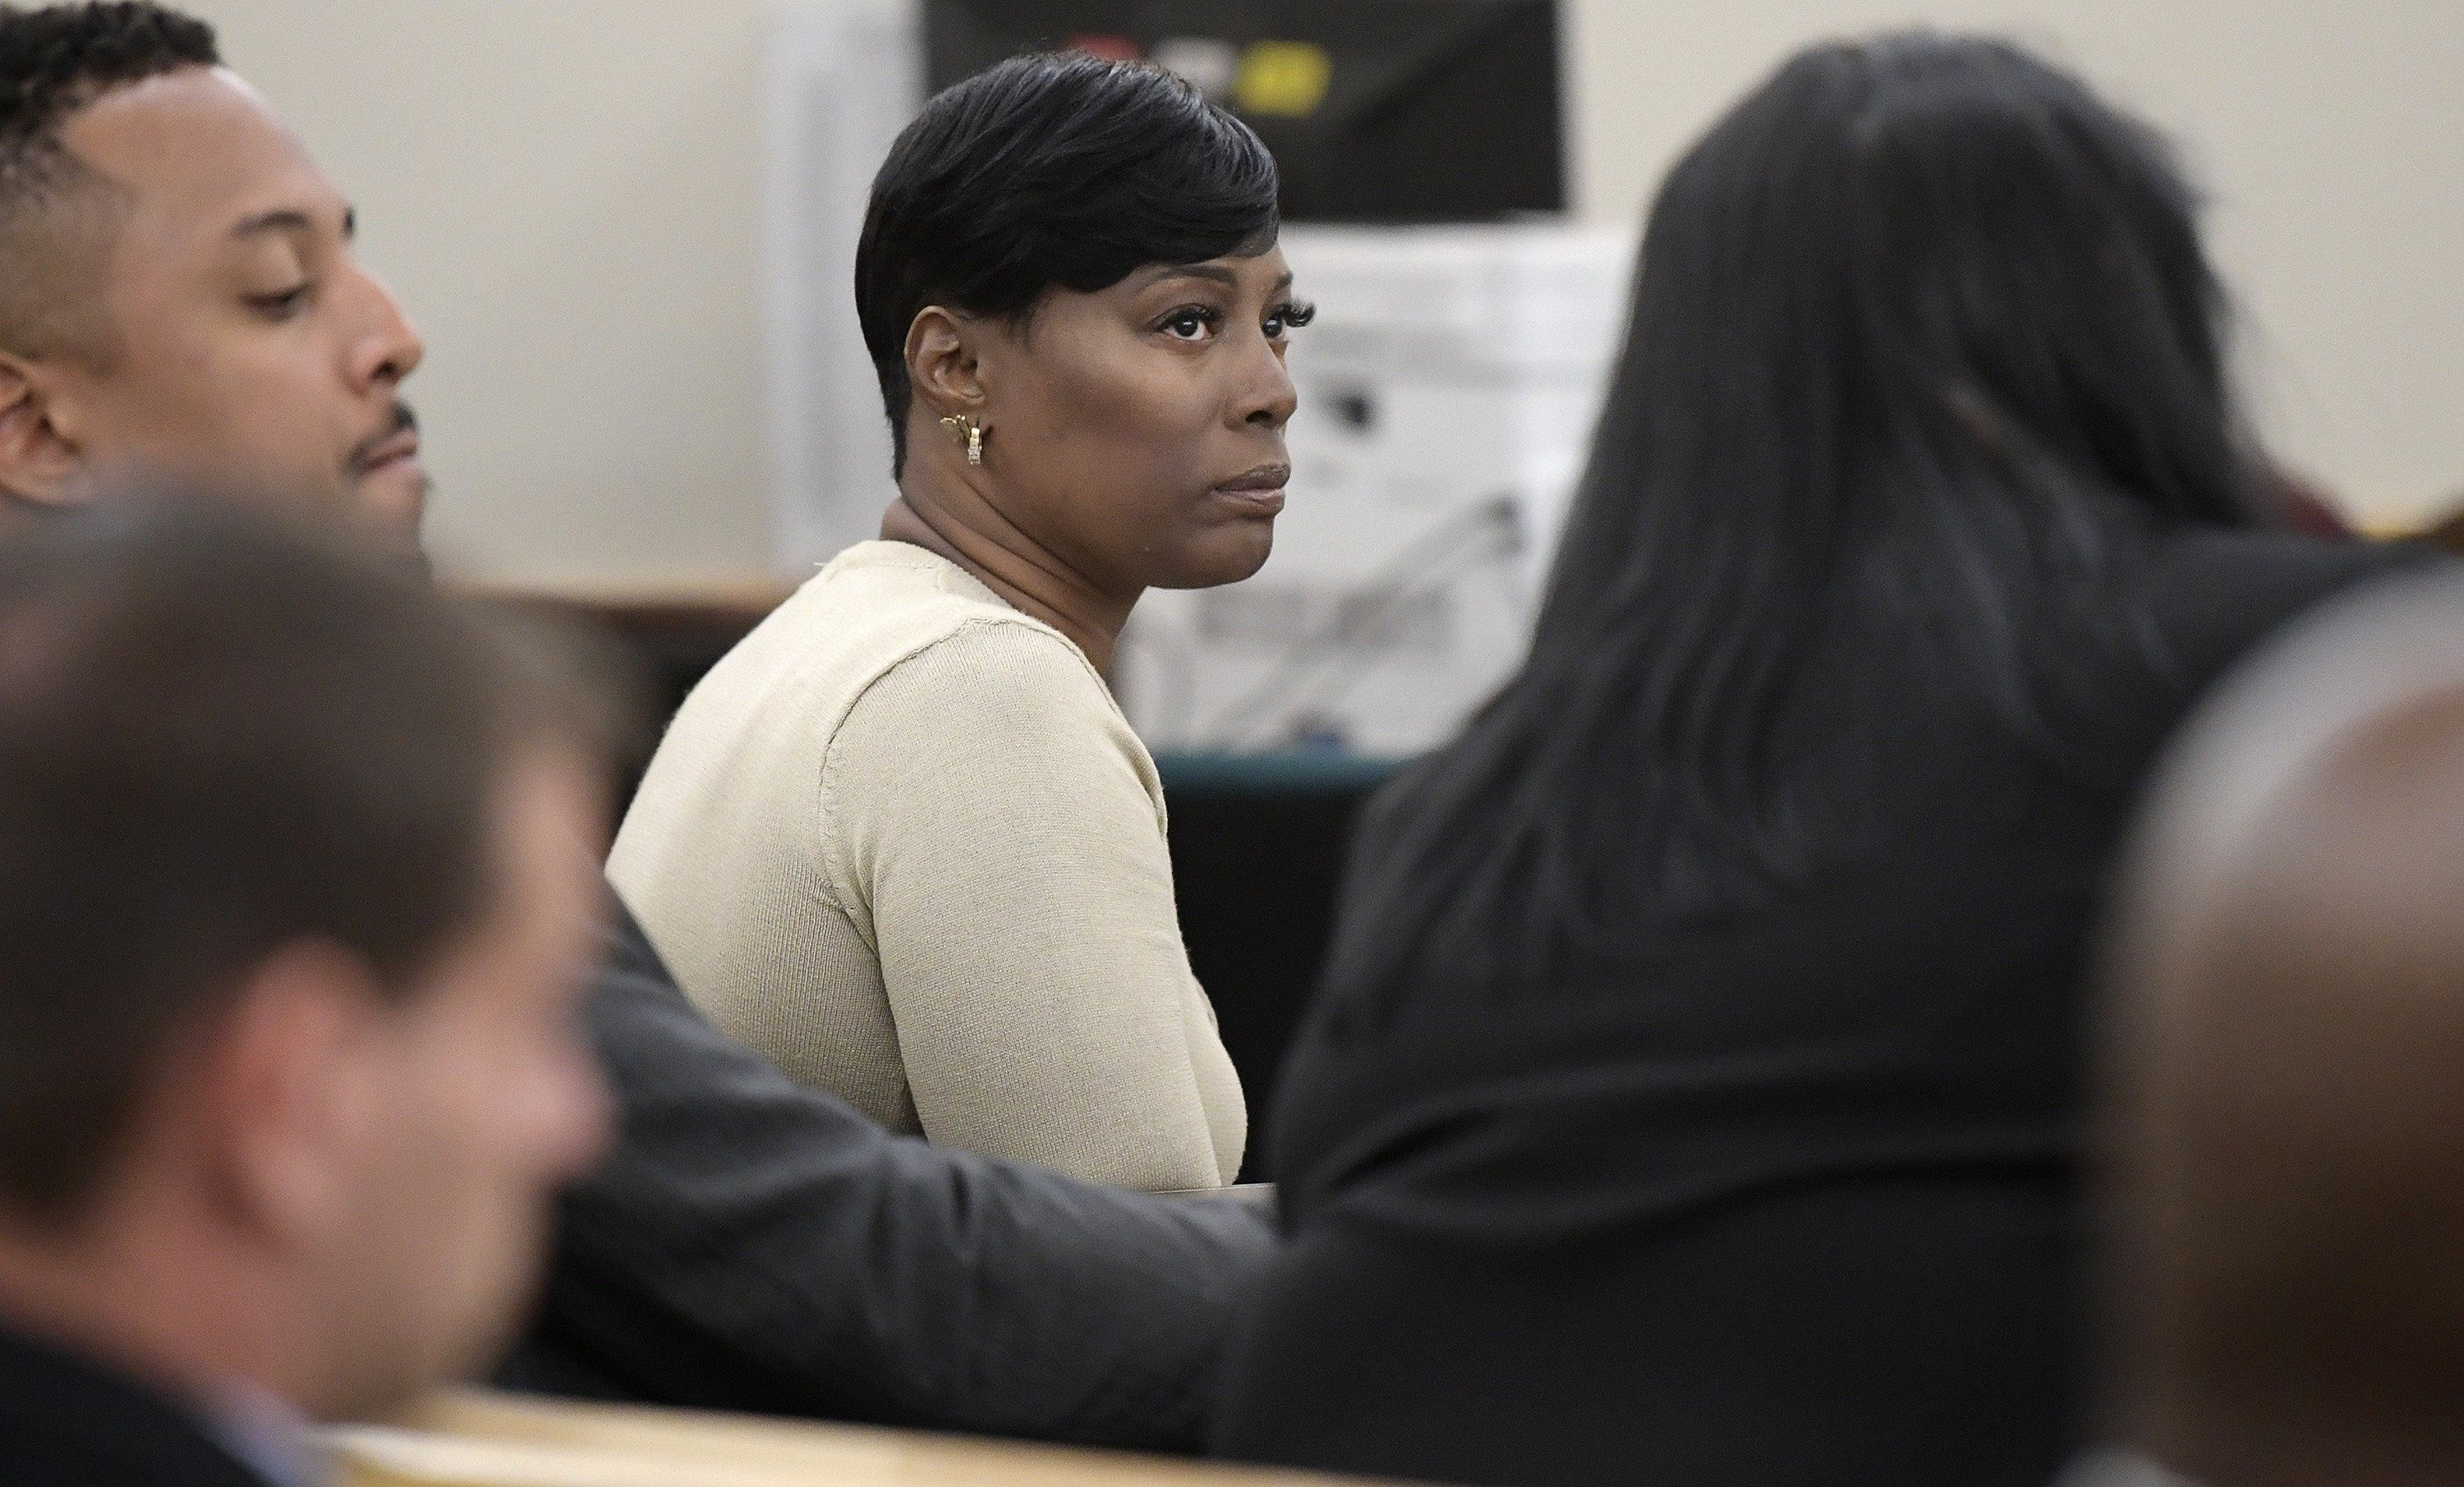 Crystal Mason, middle, convicted for illegal voting and sentenced to five years in prison, sitting at the defense table at Tim Curry Justice Center in Fort Worth, Texas, on May 25, 2018. (Max Faulkner/Fort Worth Star-Telegram/TNS via Getty Images)